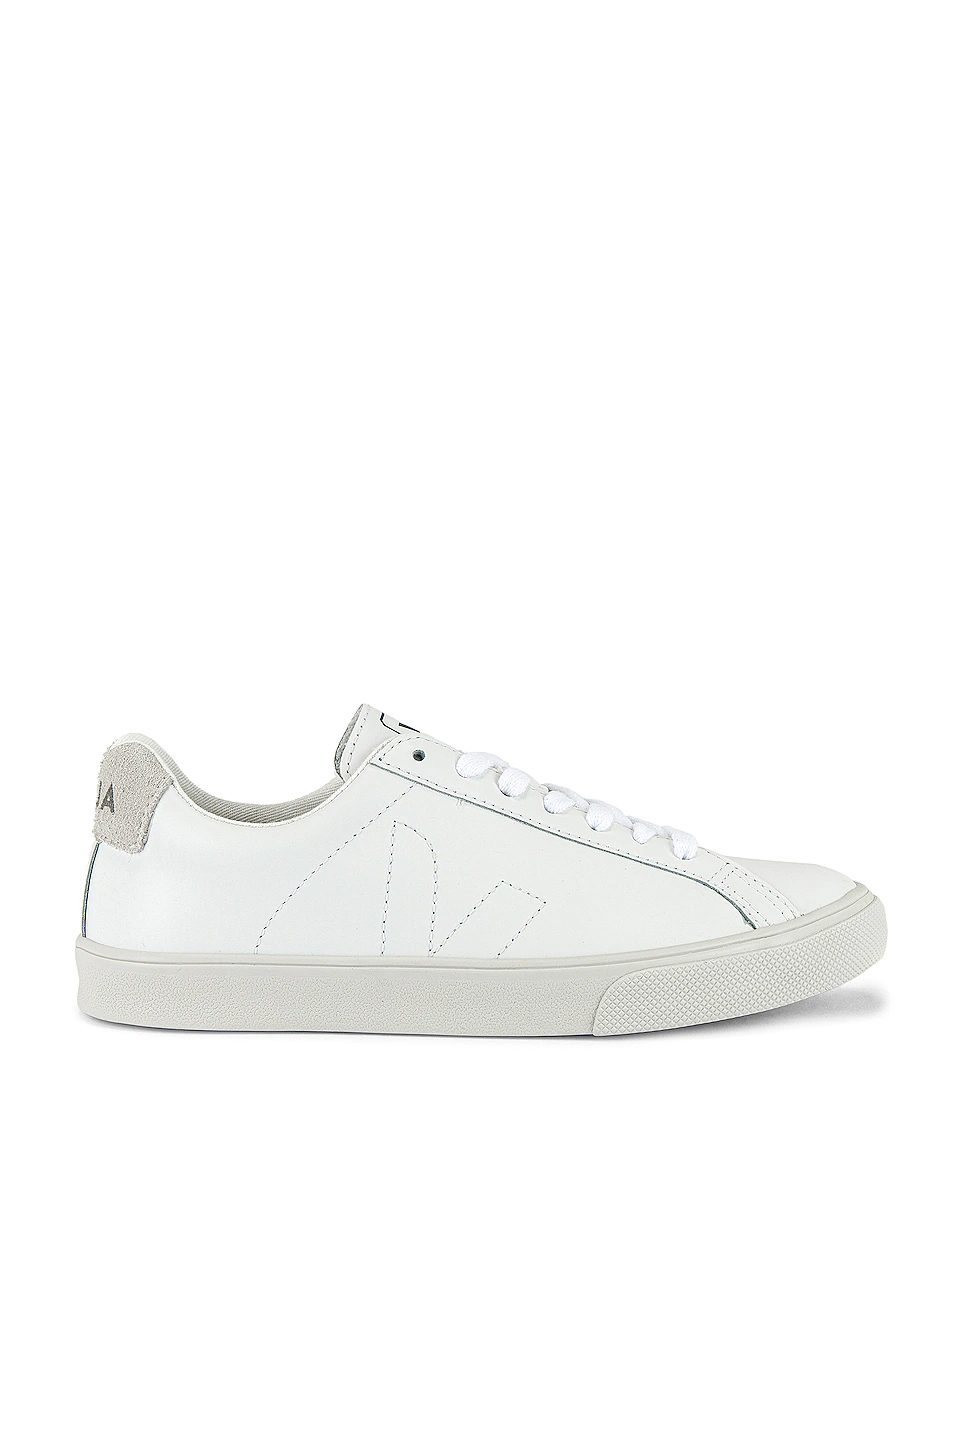 Classic white sneakers for minimalist french capsule wardrobe